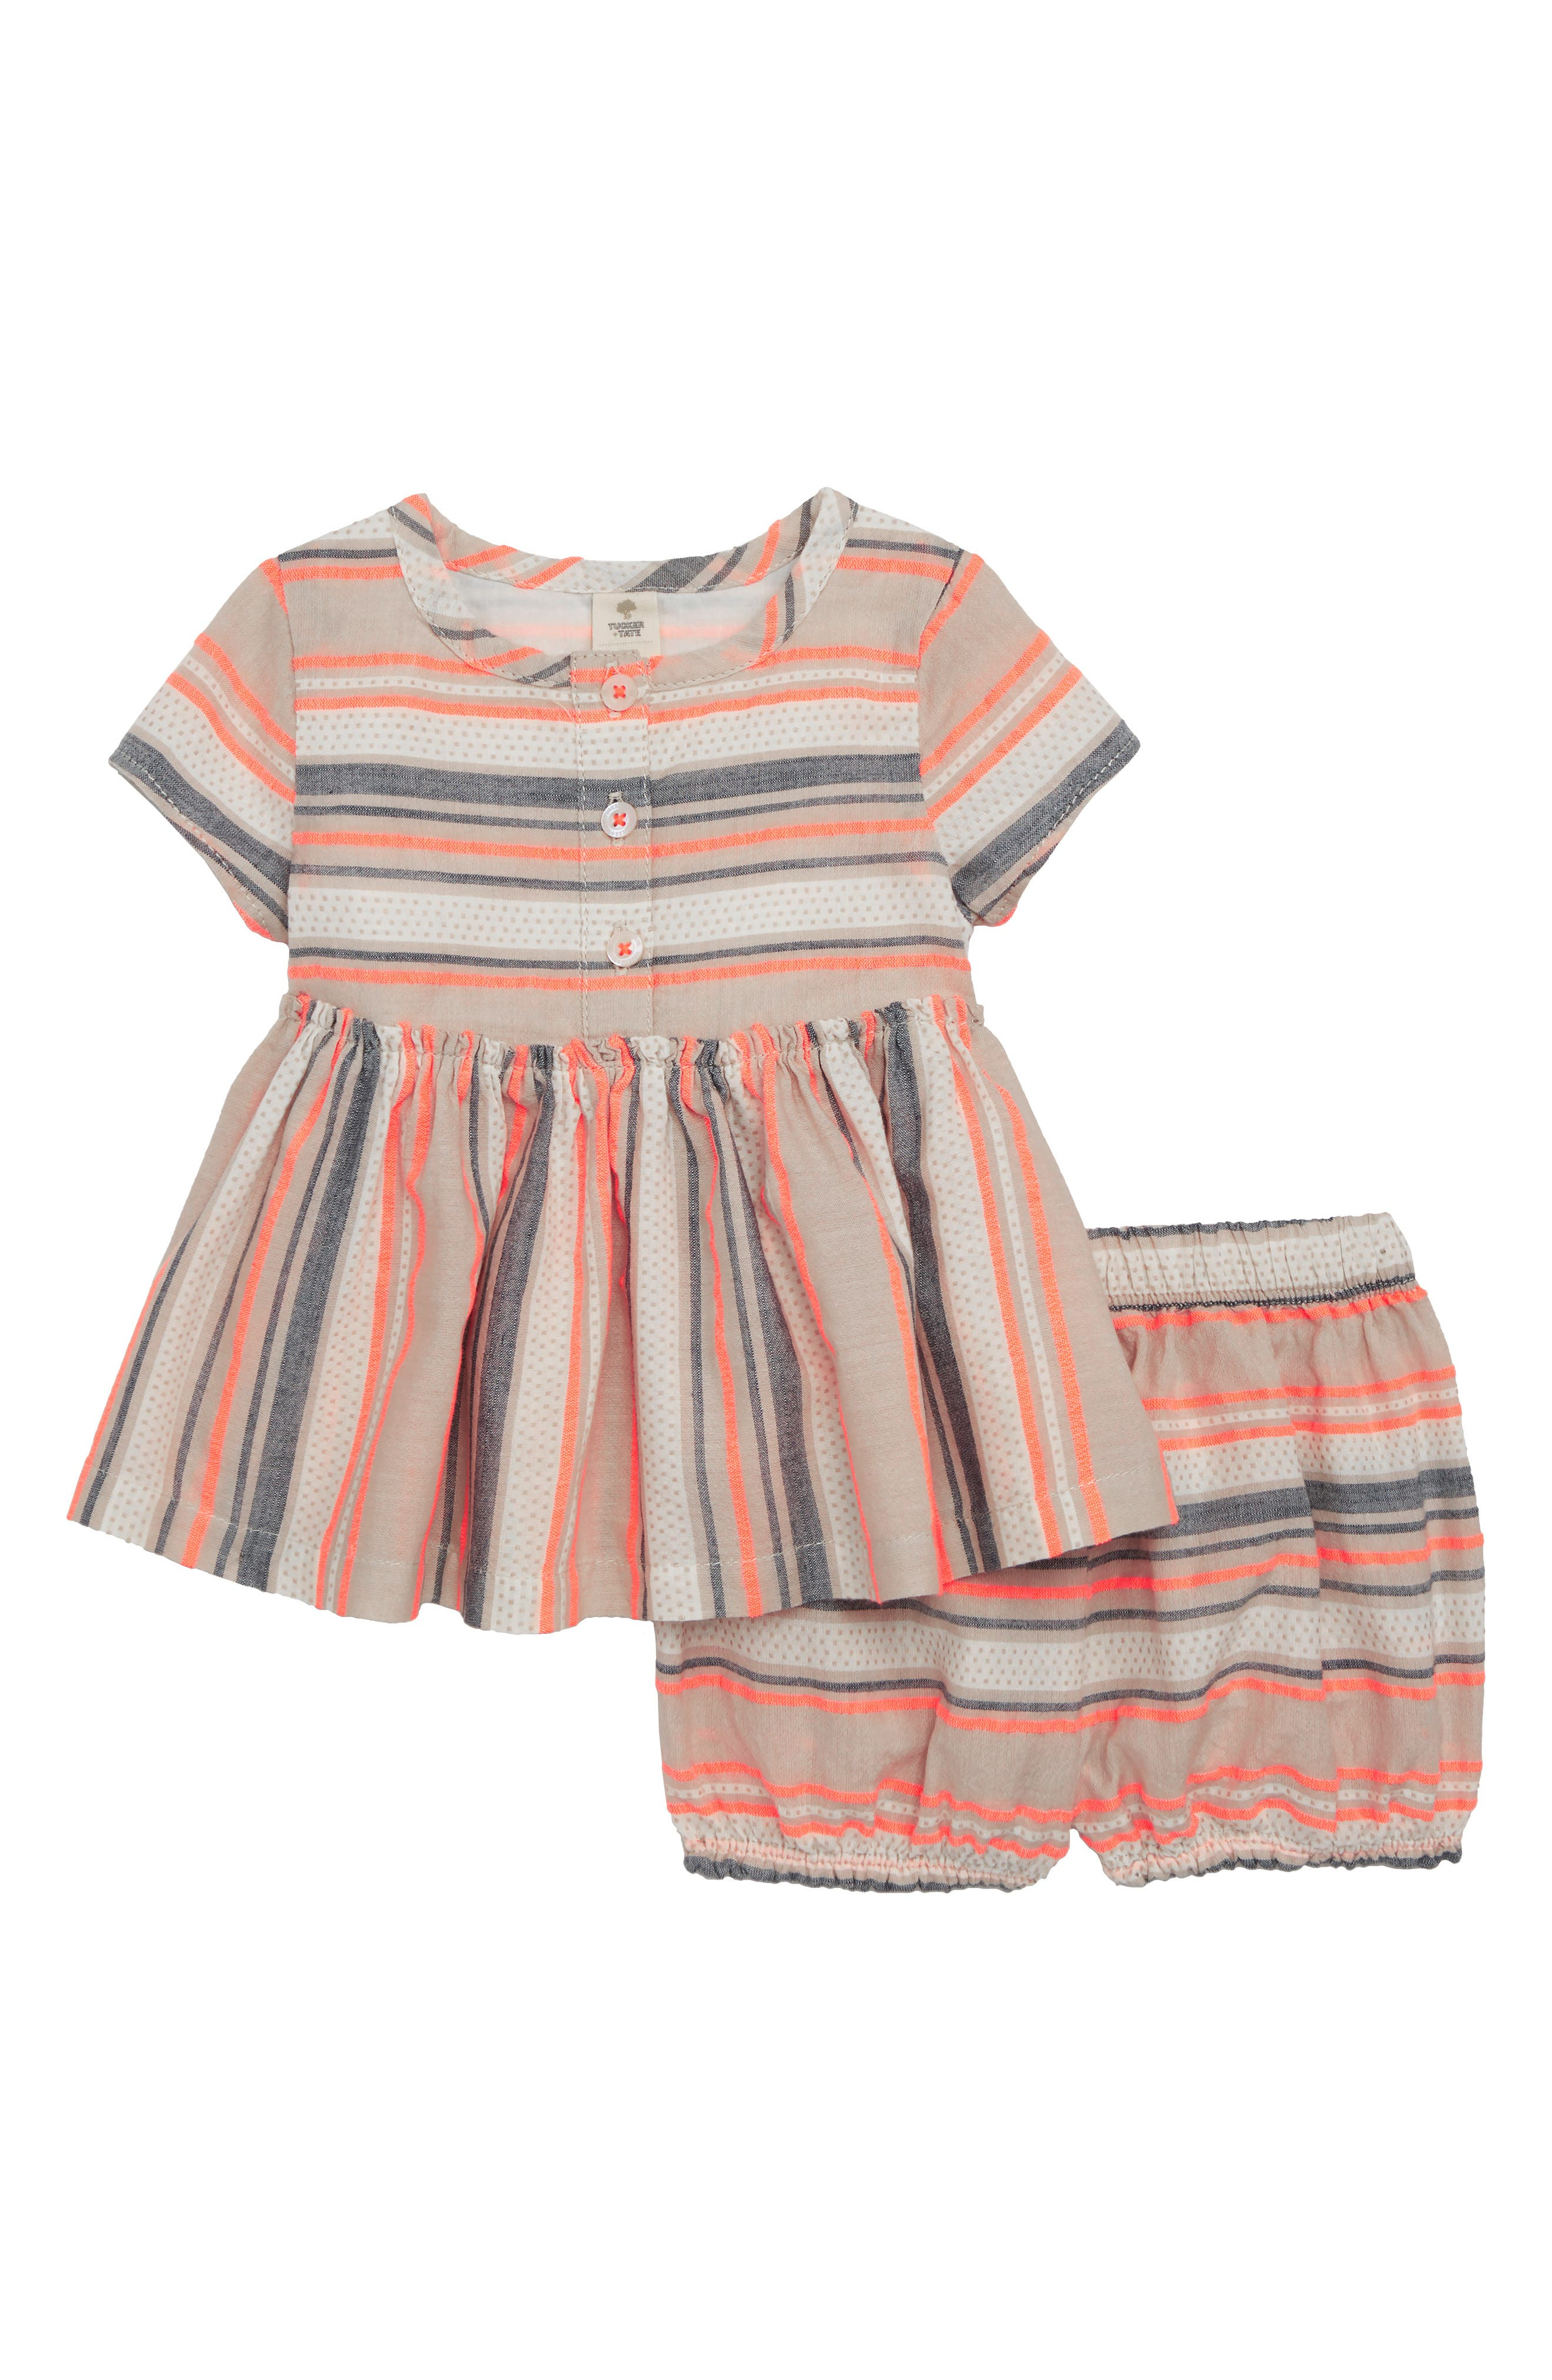 Alternate Image 1 Selected - Tucker + Tate Woven Stripe Swing Top & Bubble Shorts Set (Baby Girls)